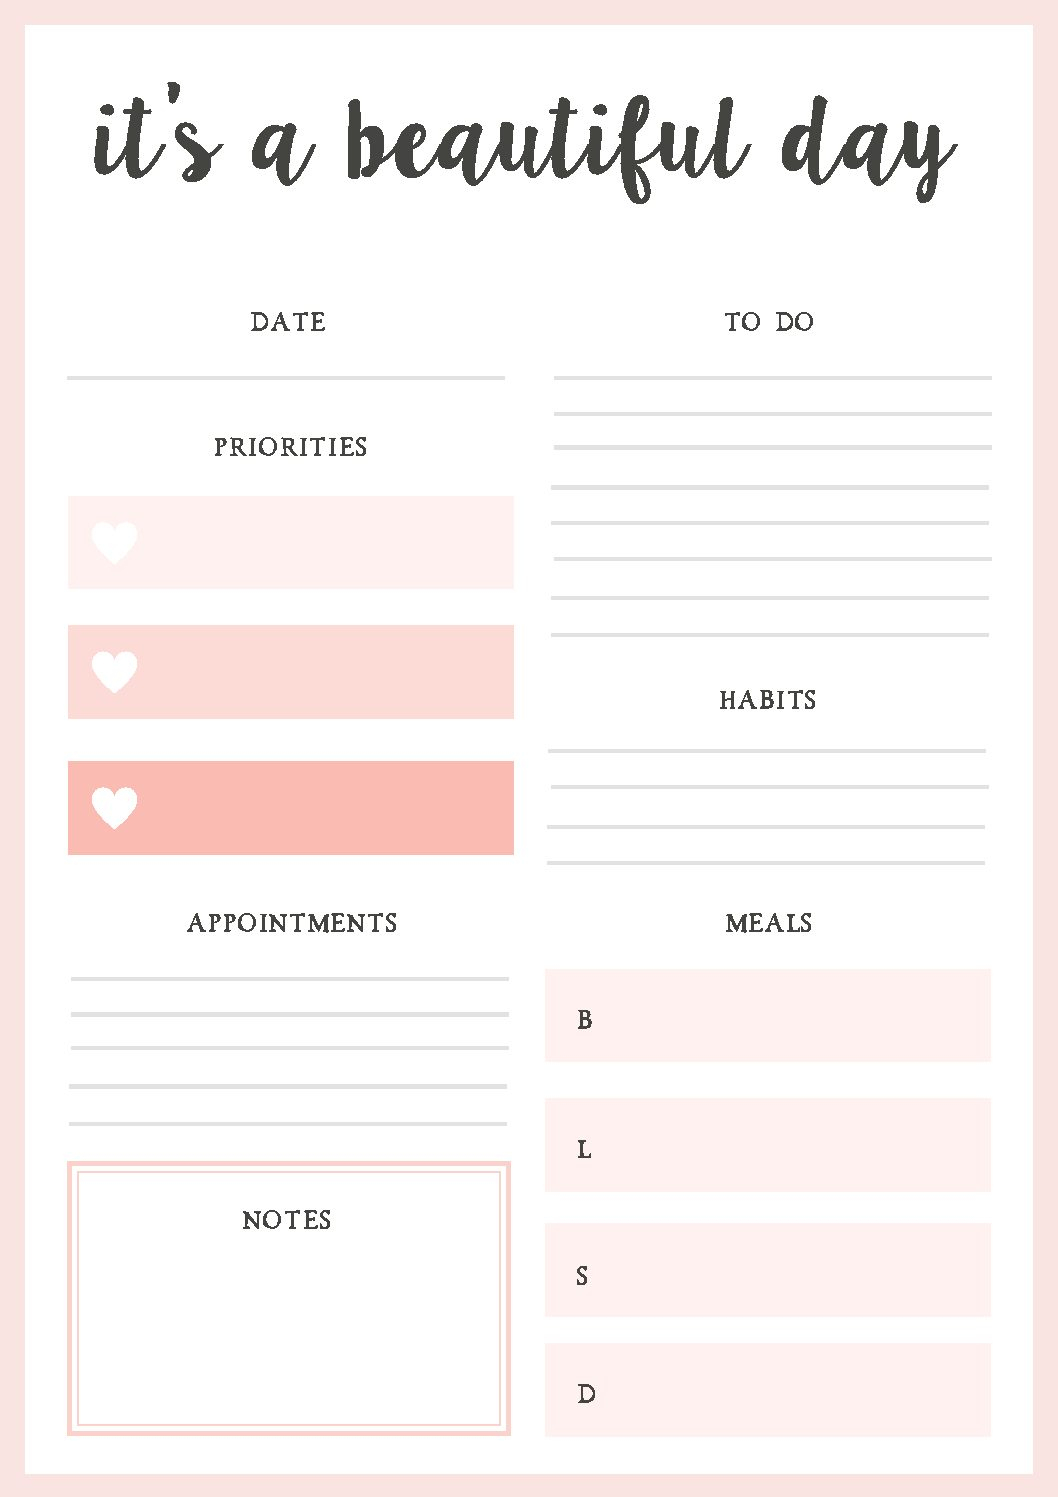 Free Printable Daily Planner! | Blessed Mess Life - Free Printable Daily Planner 2017